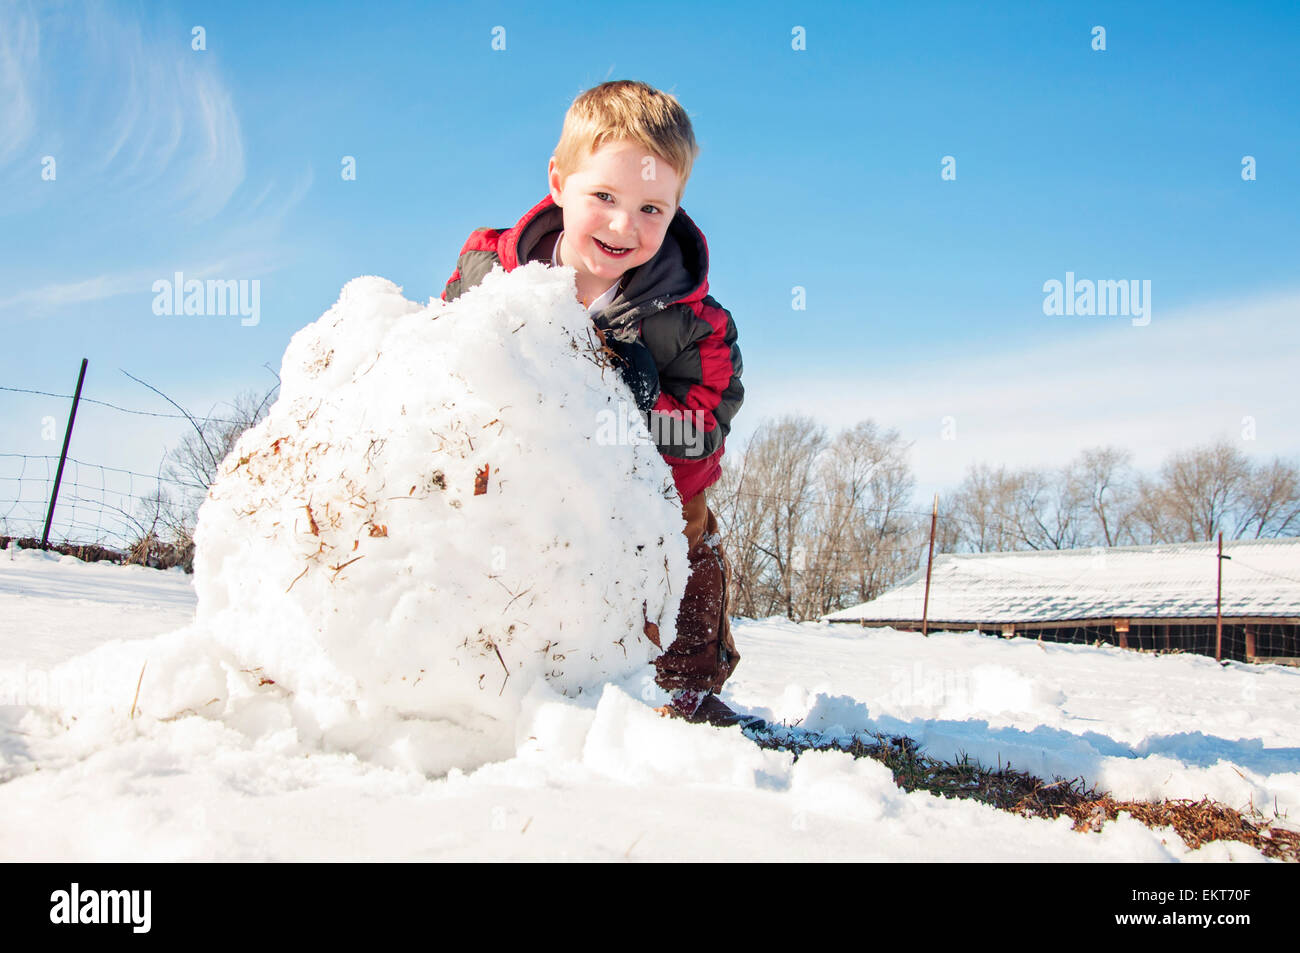 Child rolls large Snowball to make snowman - Stock Image